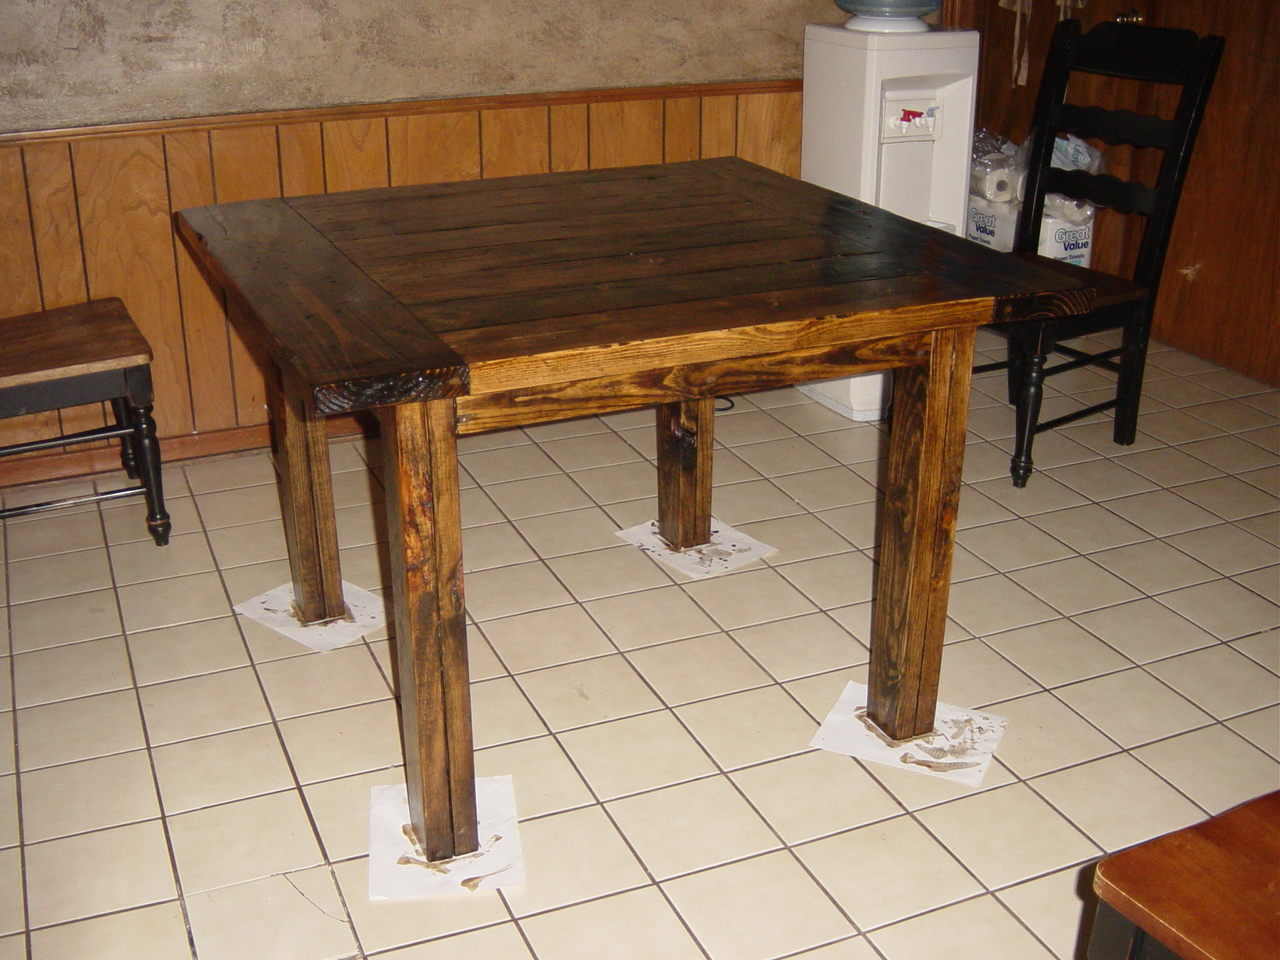 Bench wood guide plans for a kitchen table - Wood kitchen table plans ...